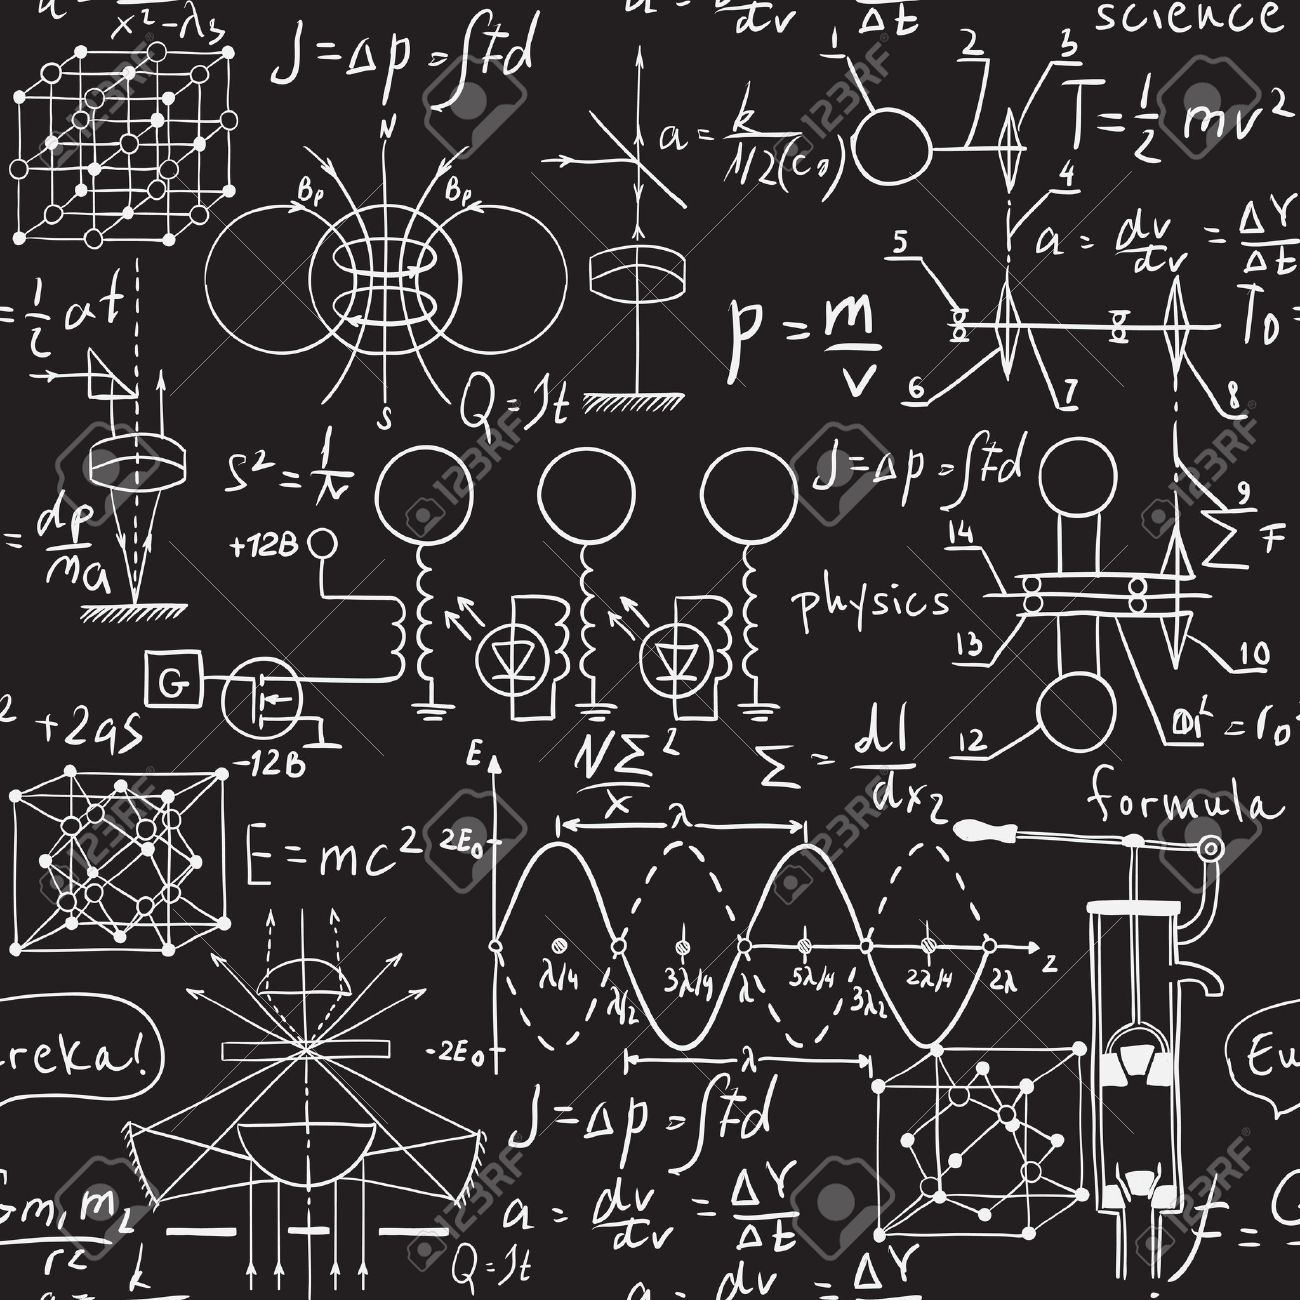 Physical formulas, graphics and scientific calculations on chalkboard. Vintage hand drawn illustration laboratory seamless pattern - 43922159